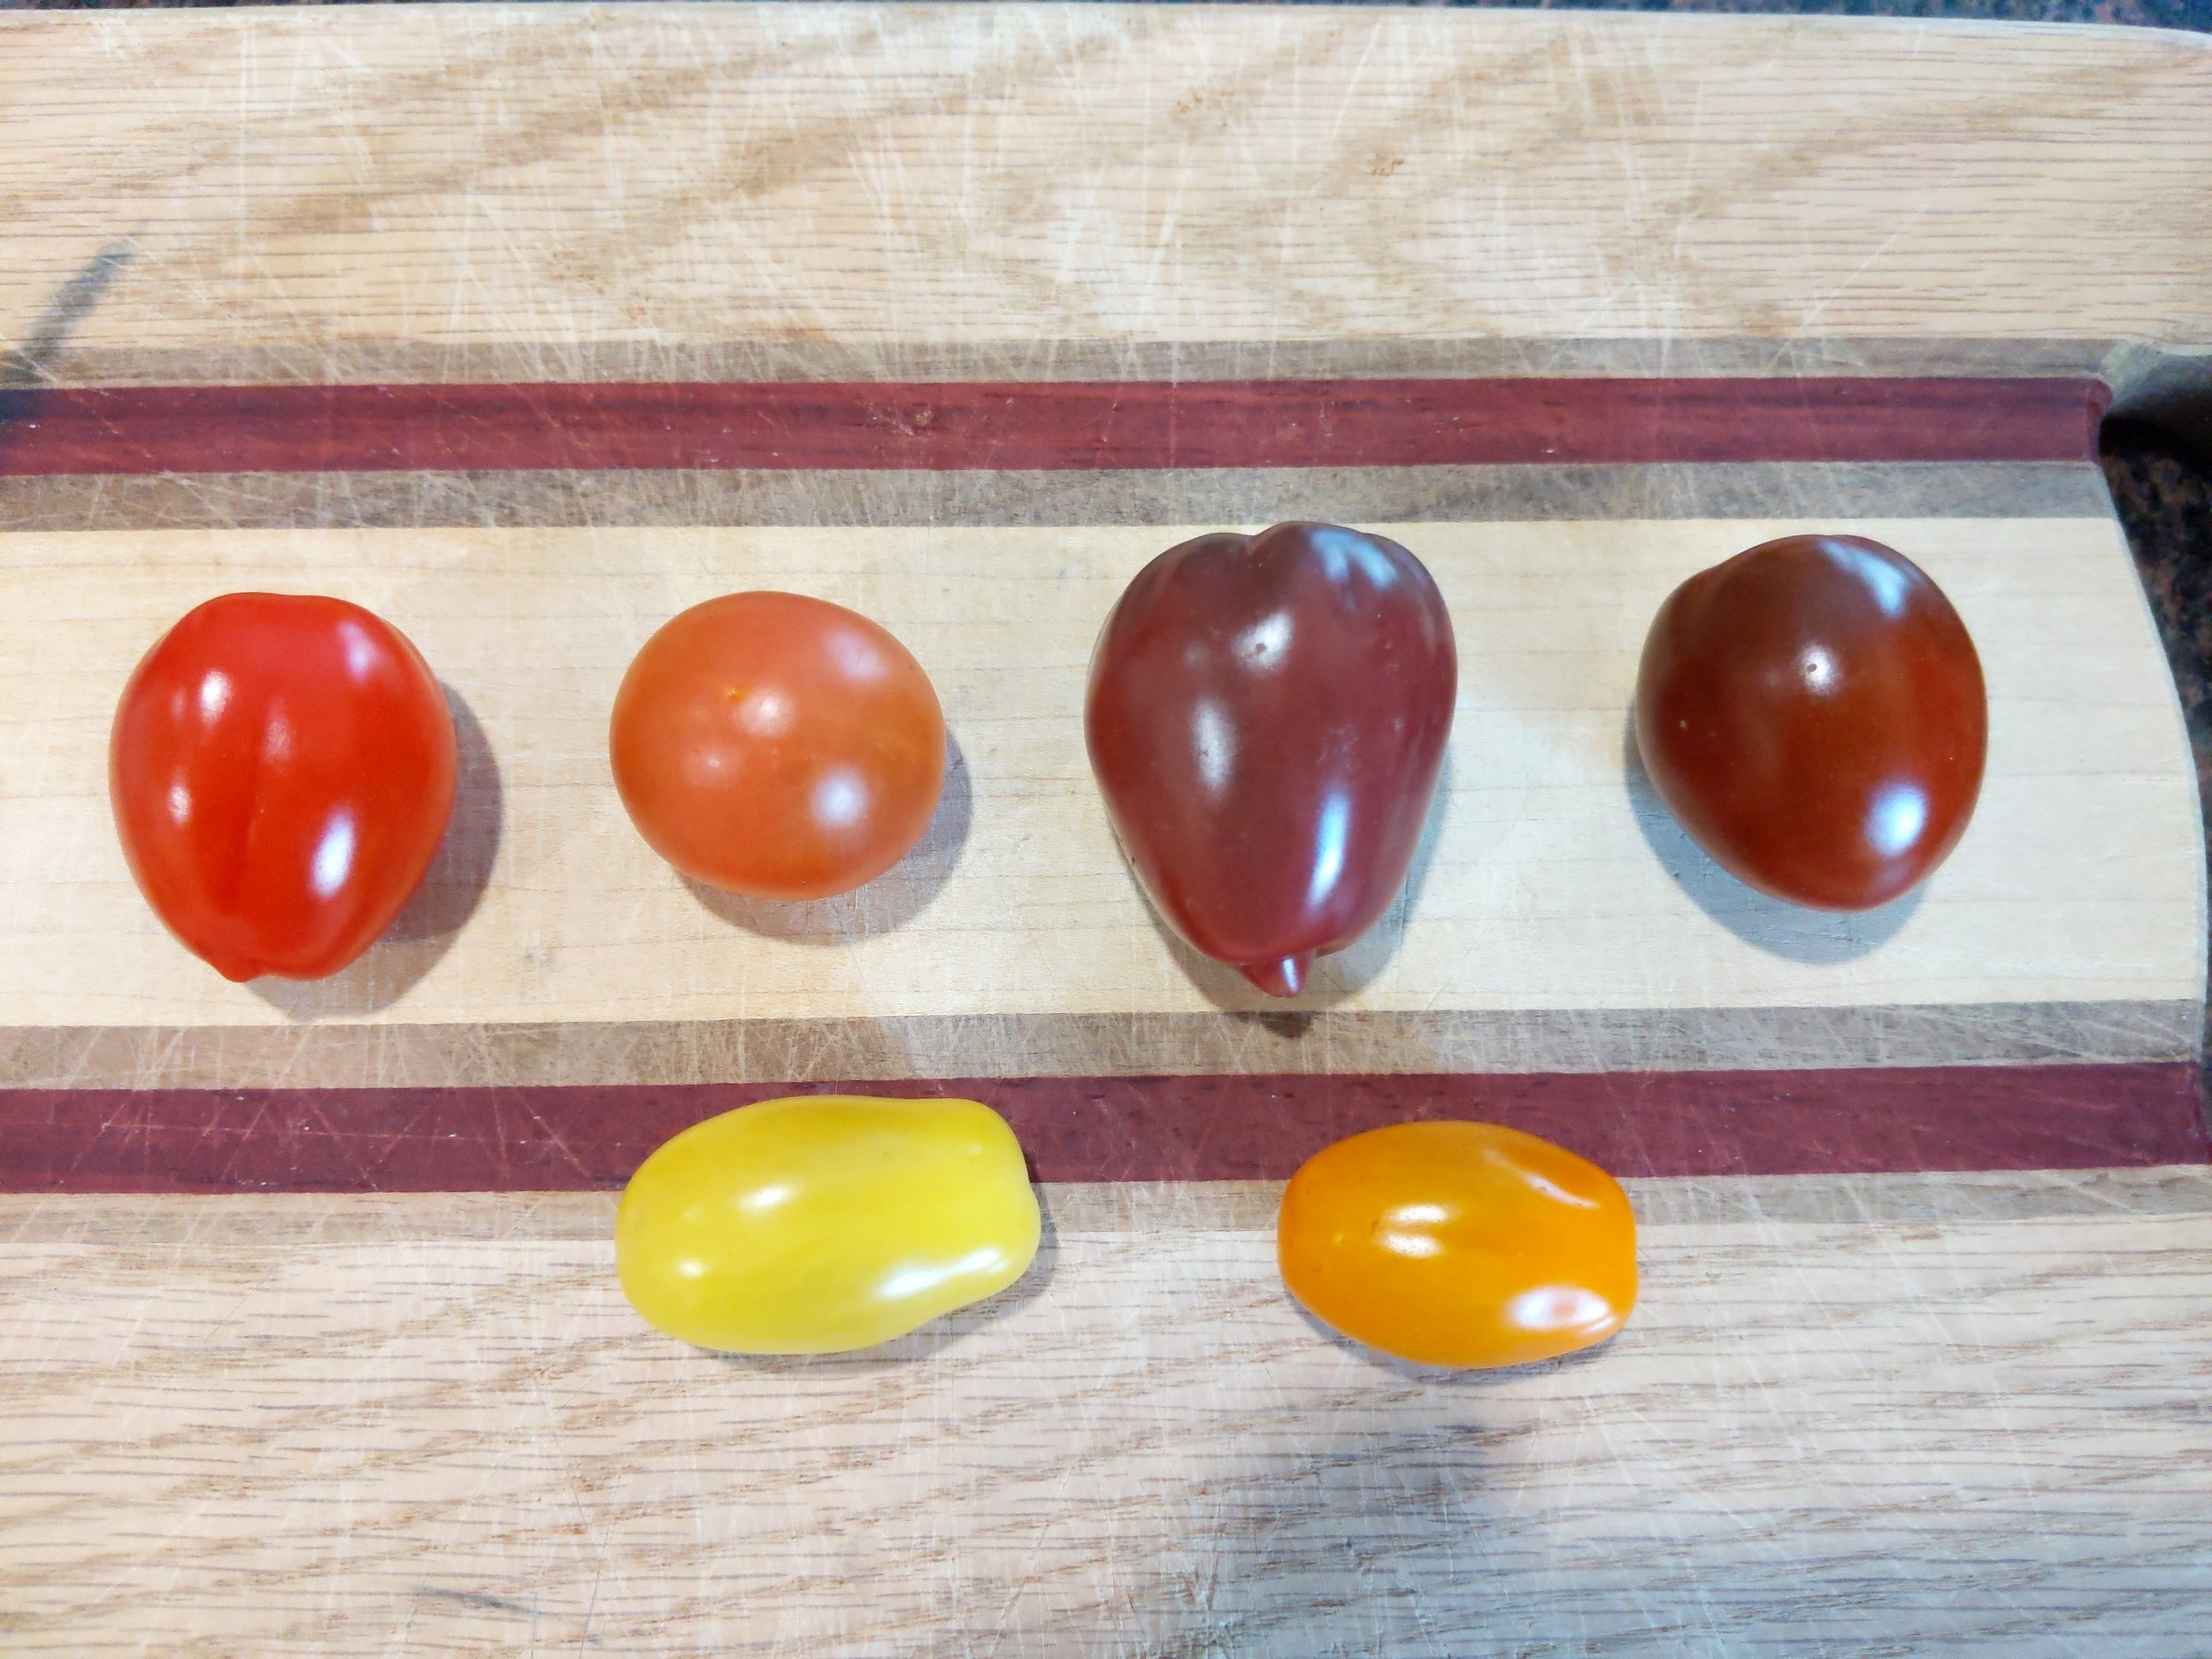 Even grocery stores carry tomatoes in a range of colors in 2019….let's talk about how we got here.